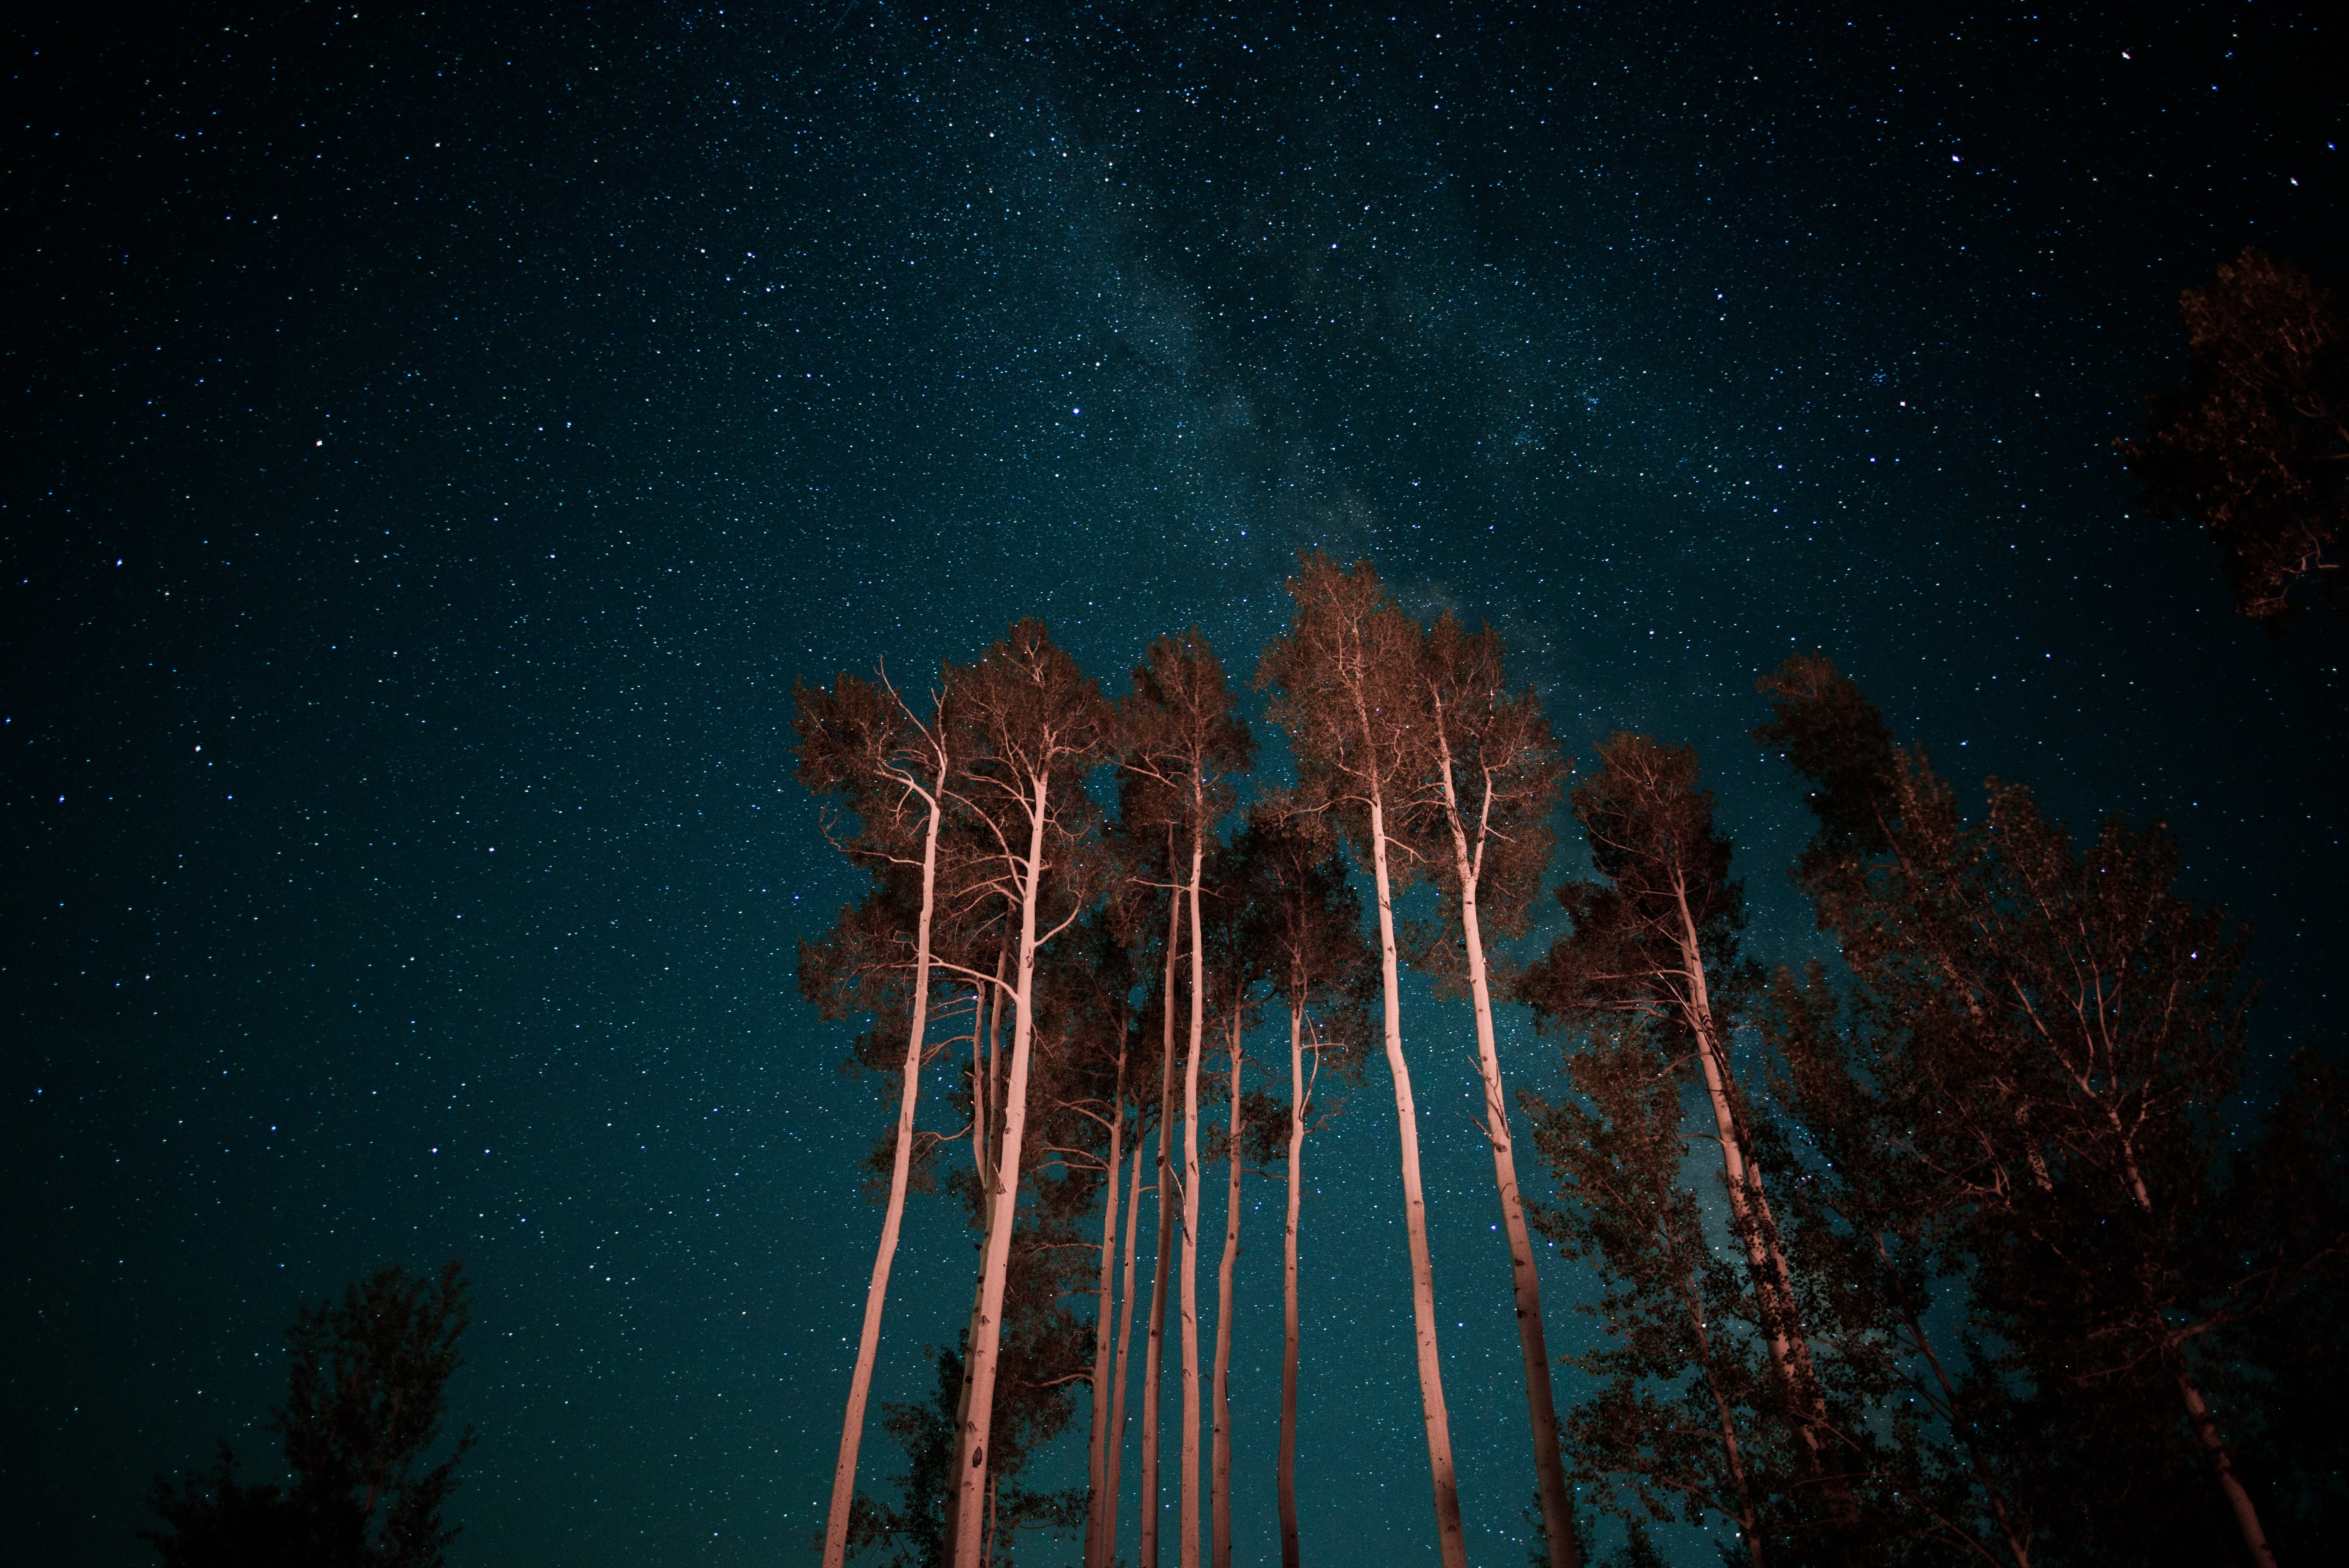 worm's-eye view of night sky above trees